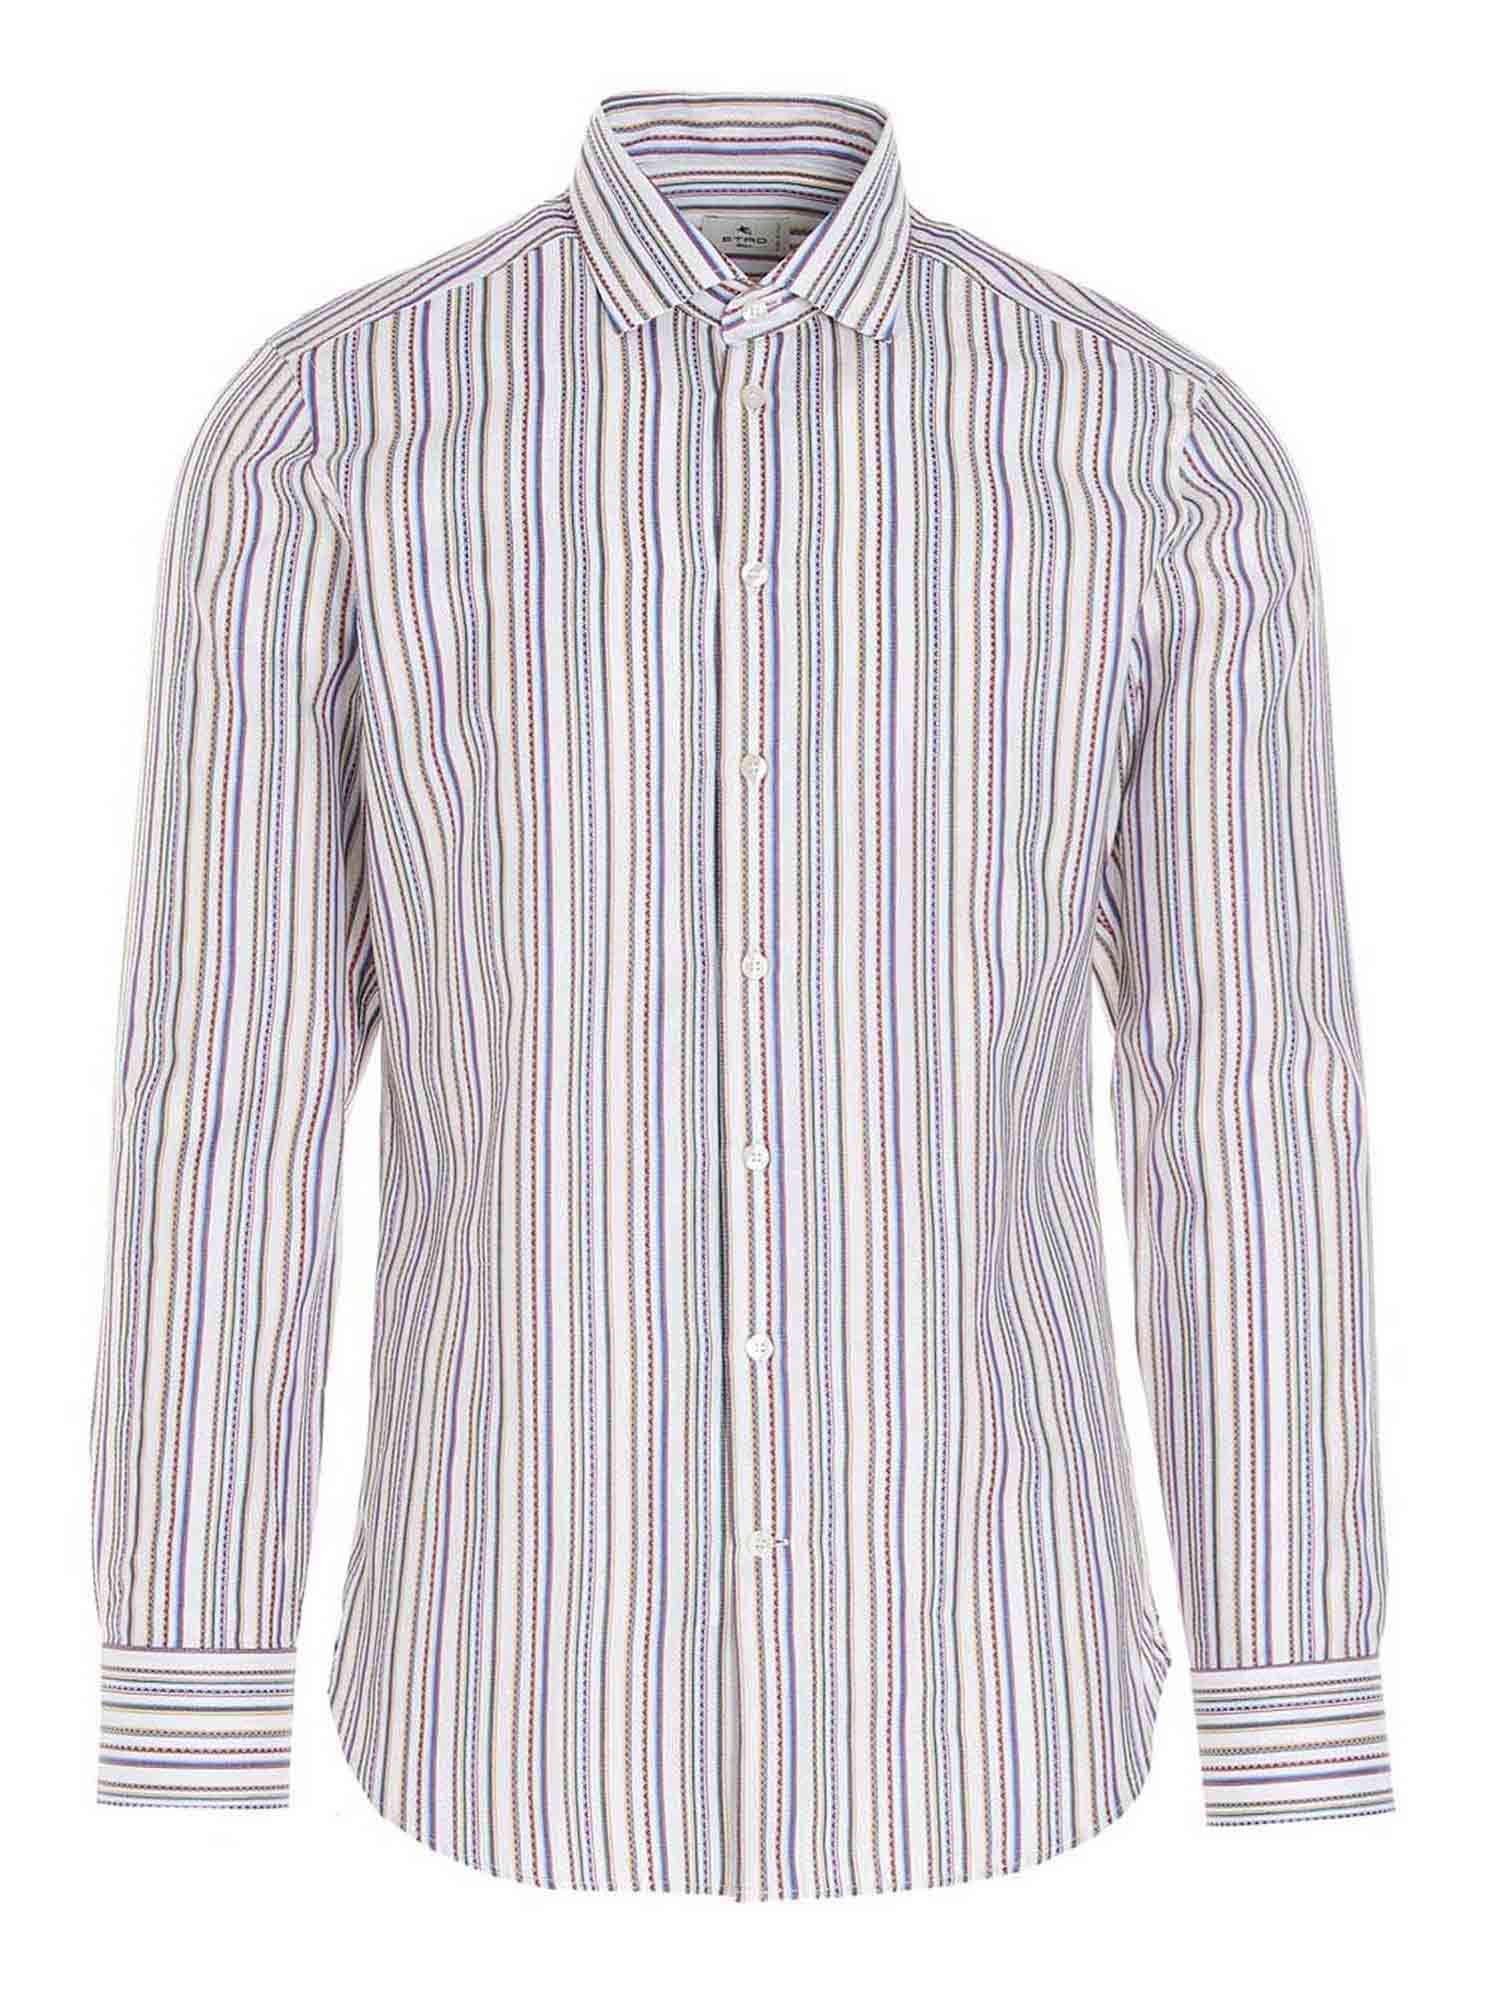 Etro Cottons STRIPED SHIRT IN MULTICOLOR